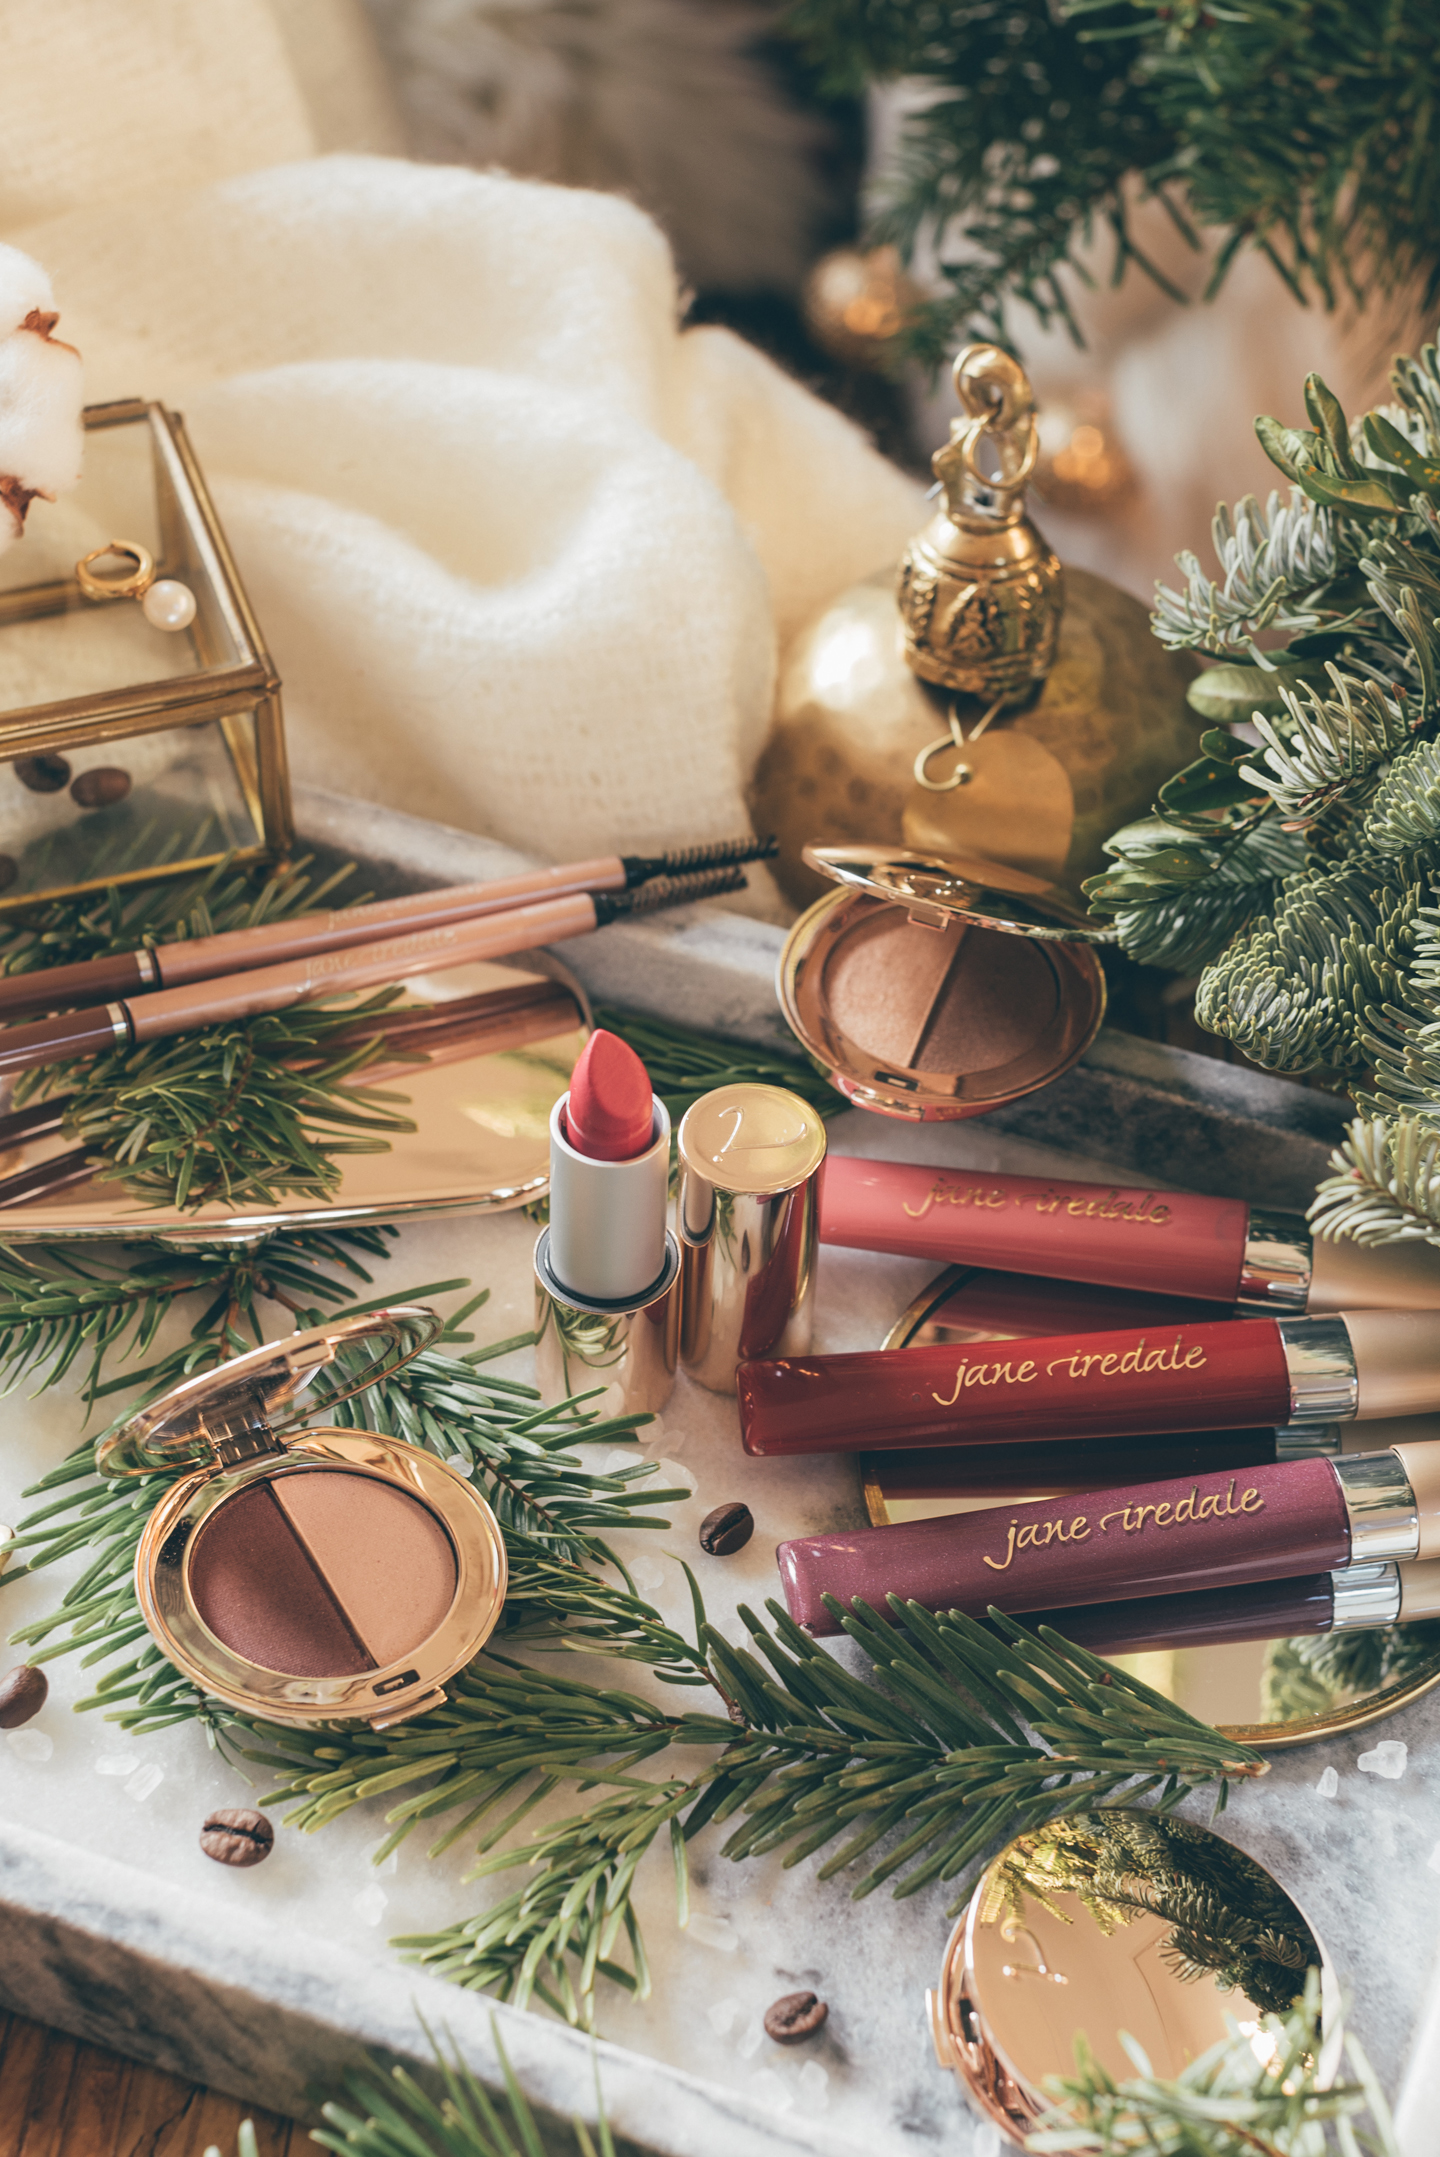 Gift Guide Cruelty Free Beauty Linda's Wholesome Life jane iredale